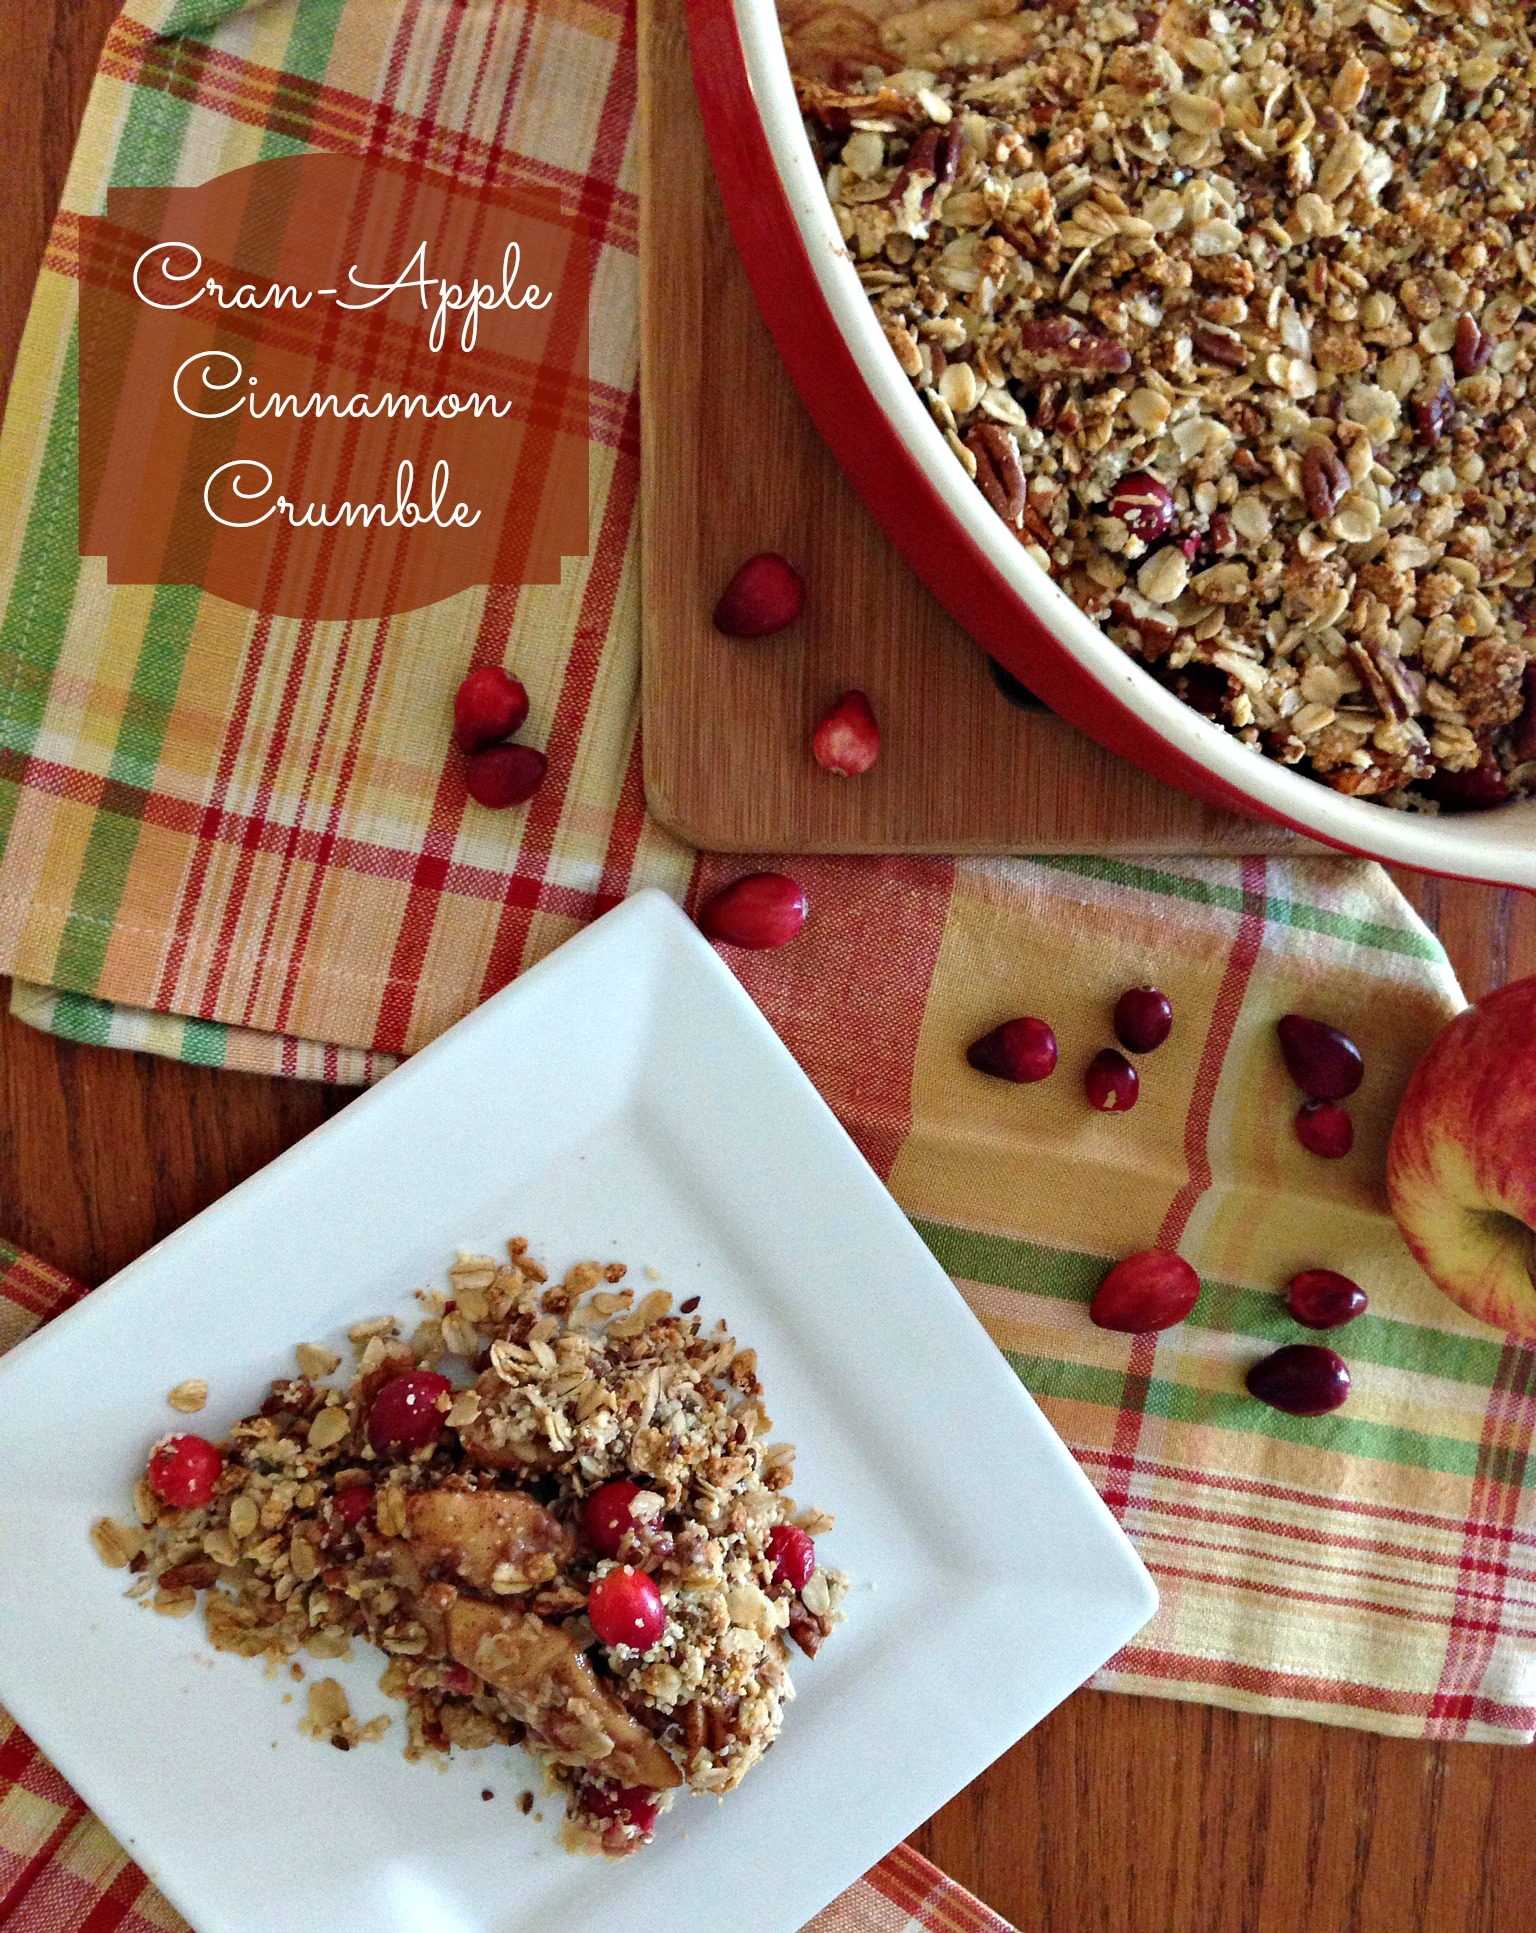 Cran-Apple Cinnamon Crumble